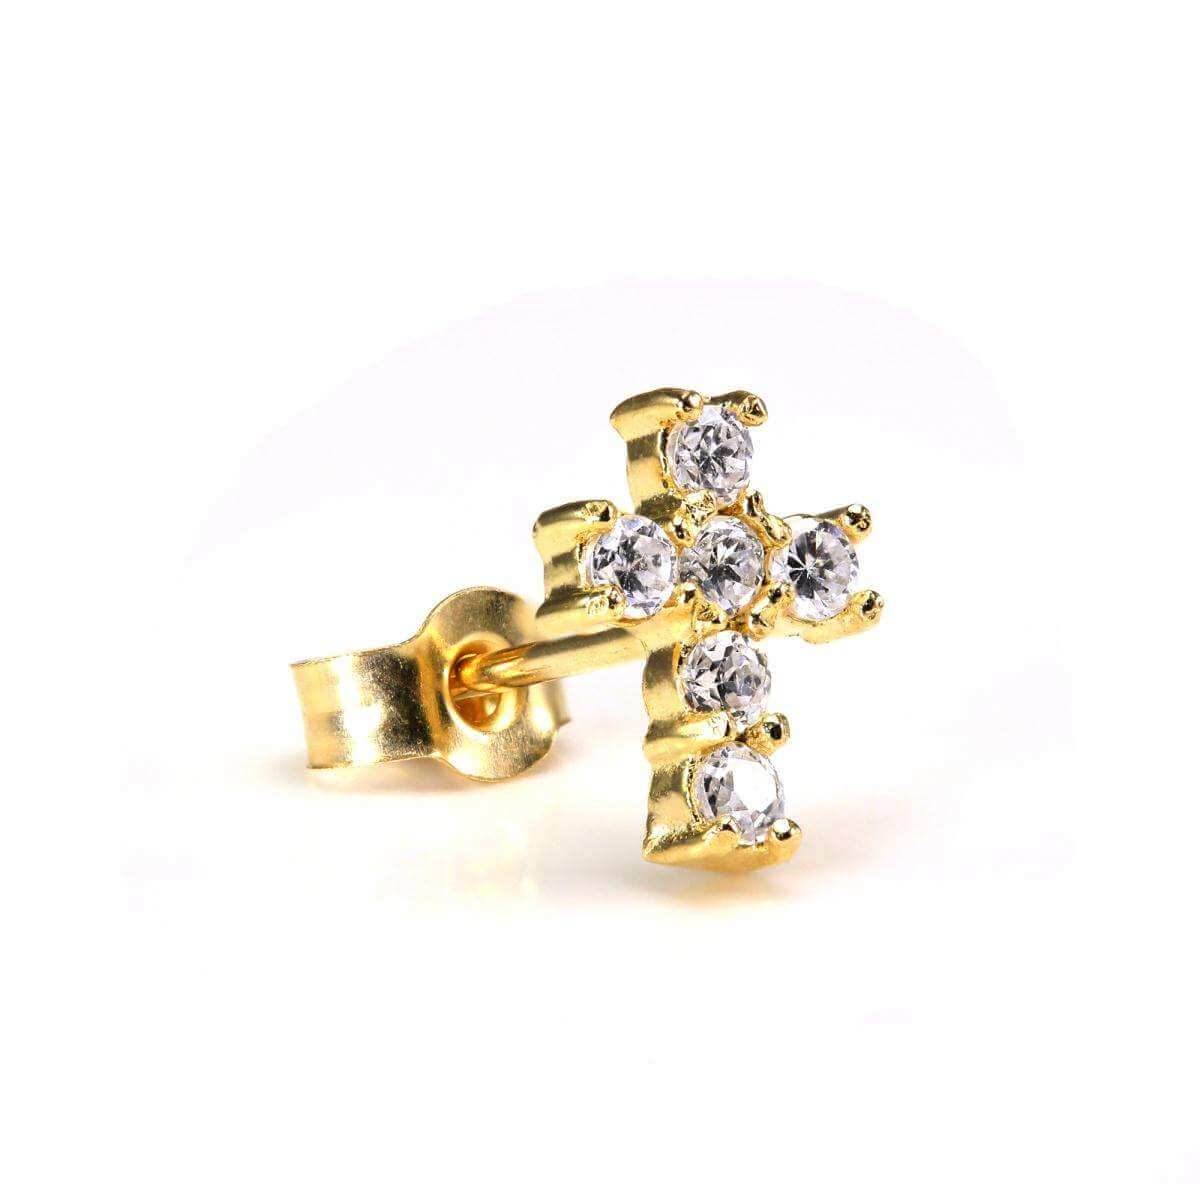 Small 9ct Gold & CZ Crystal Encrusted Mens Cross Ear Stud Earring